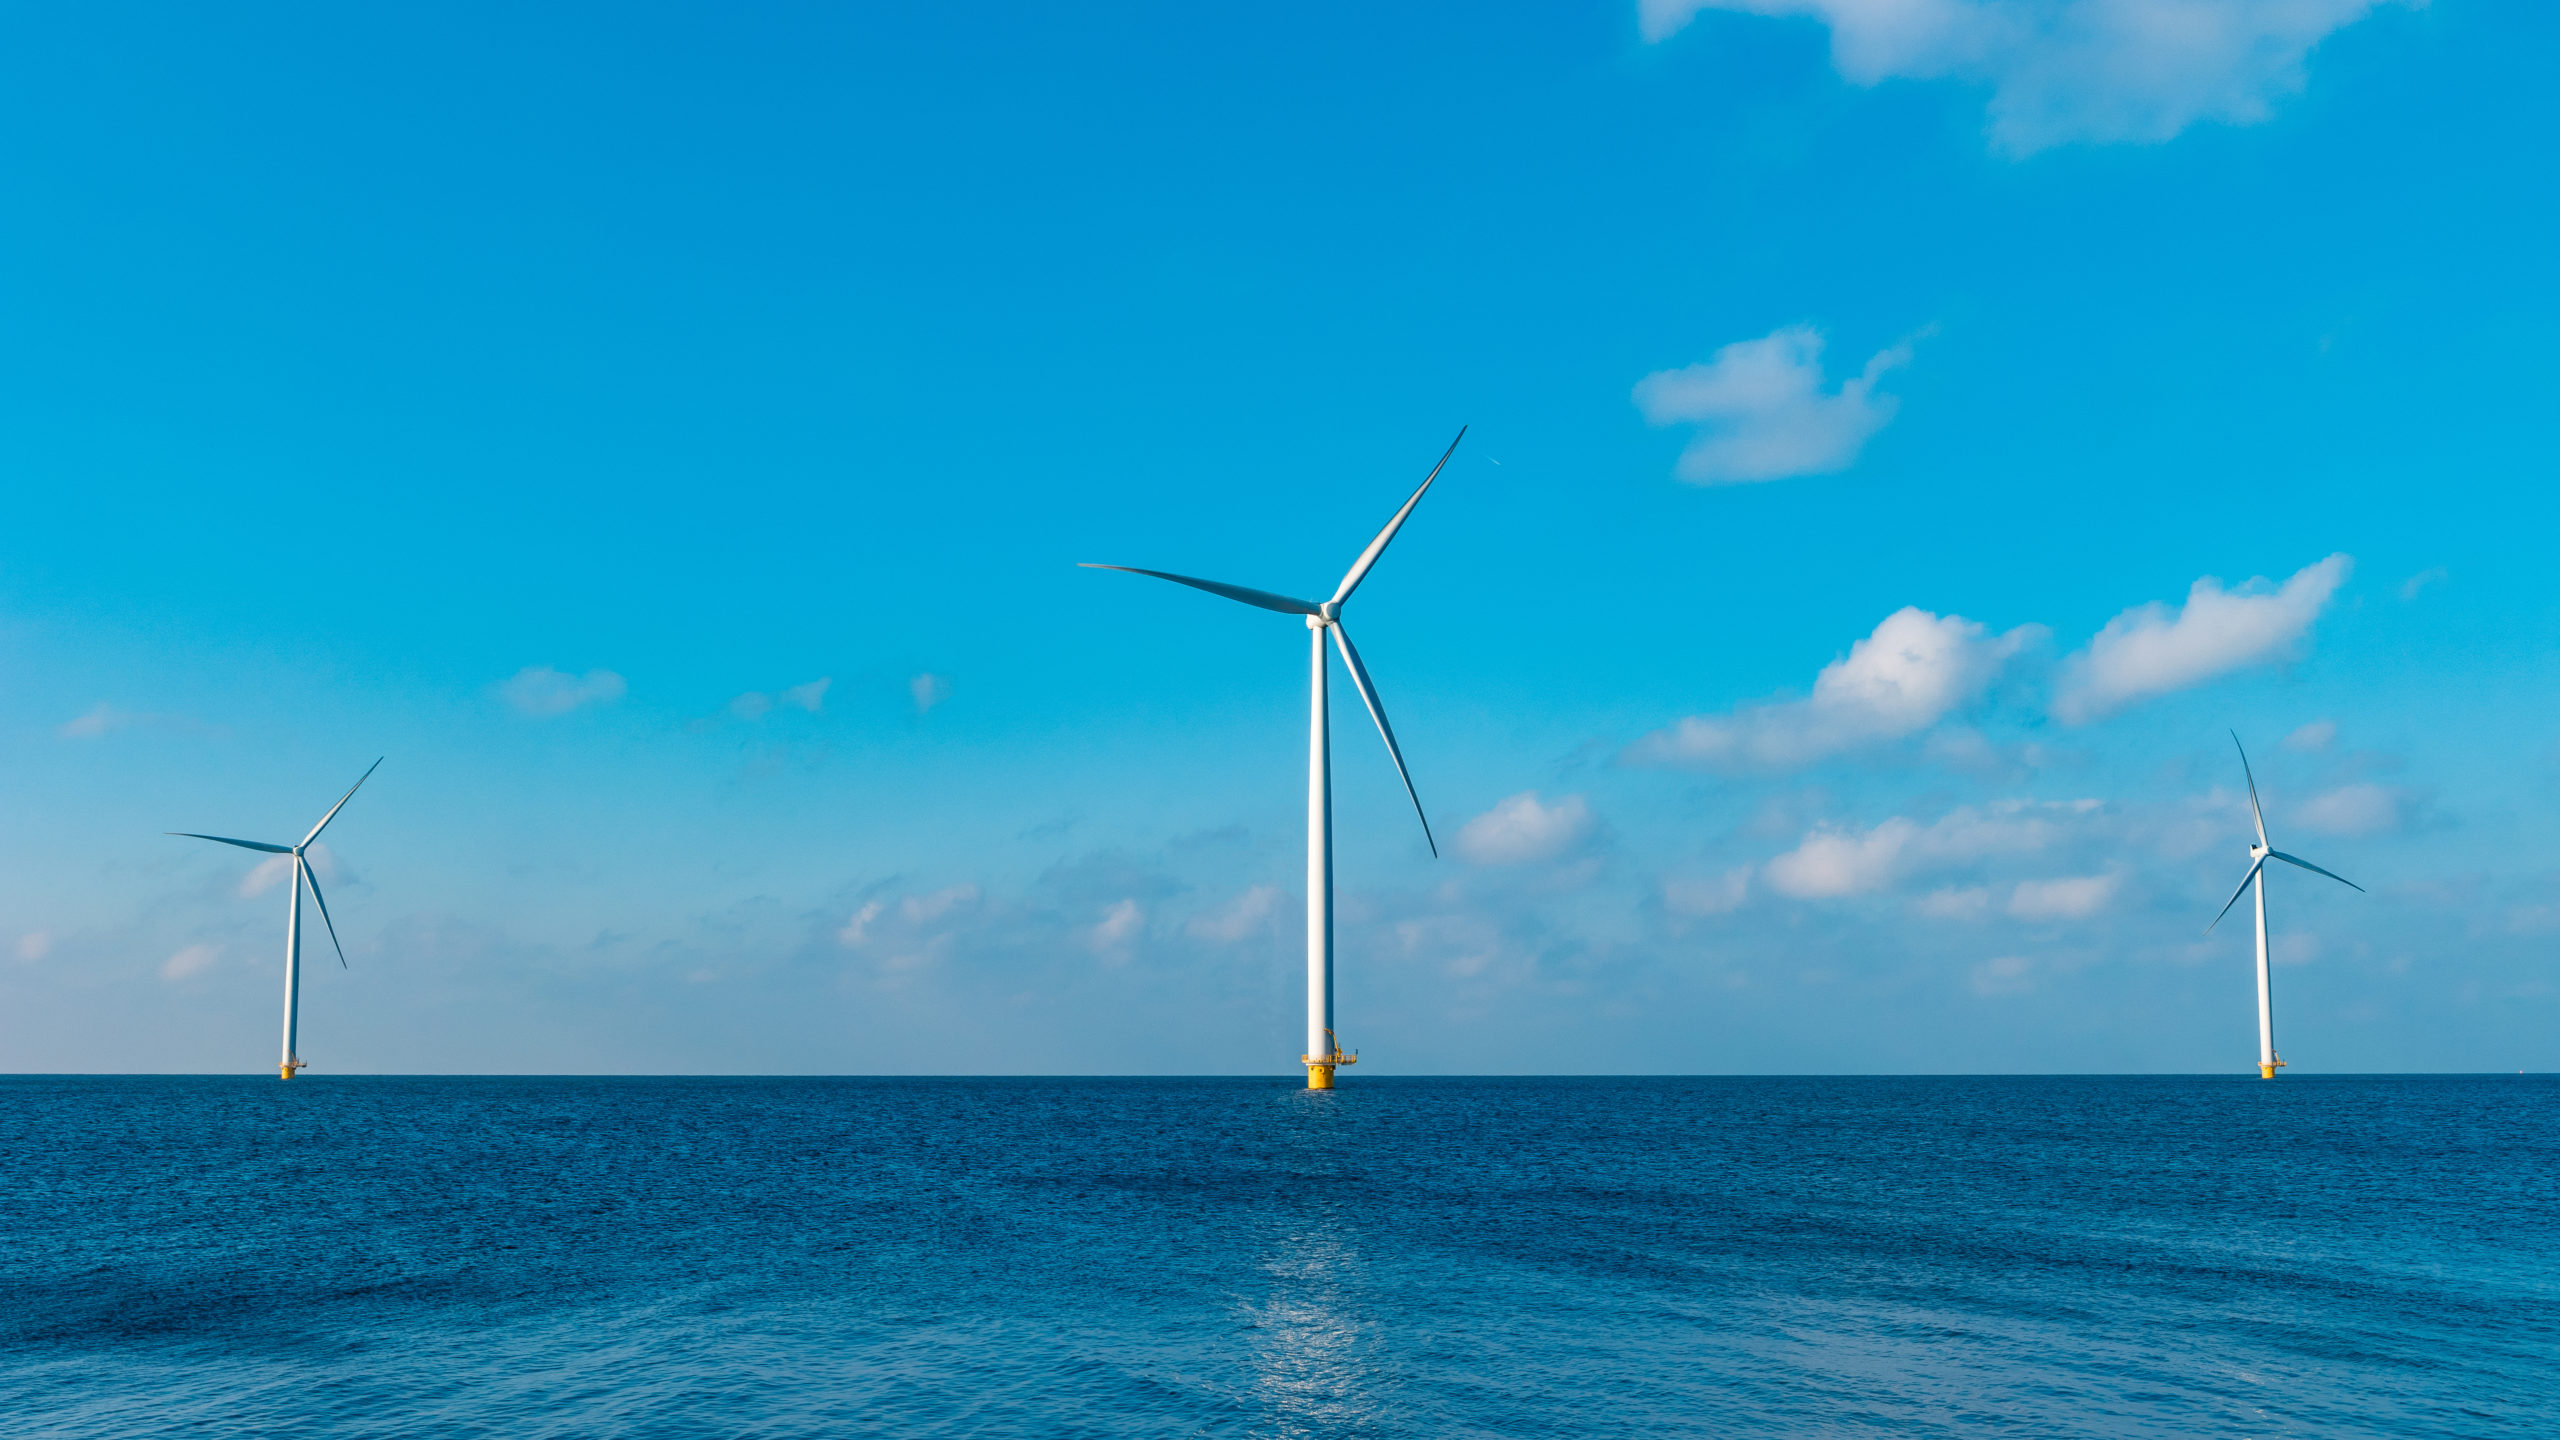 Anbaric Completes Second Phase of Marine Survey Activities For Boardwalk Power Link Project